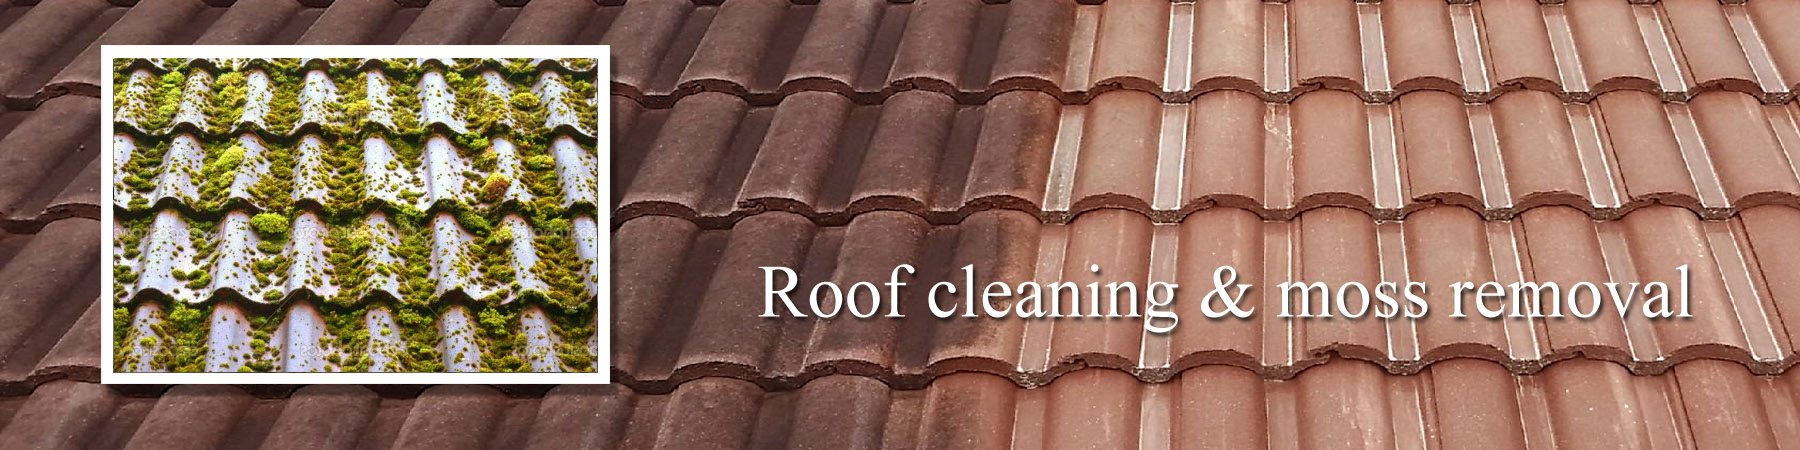 Roof cleaning St Albans J R Cleaning